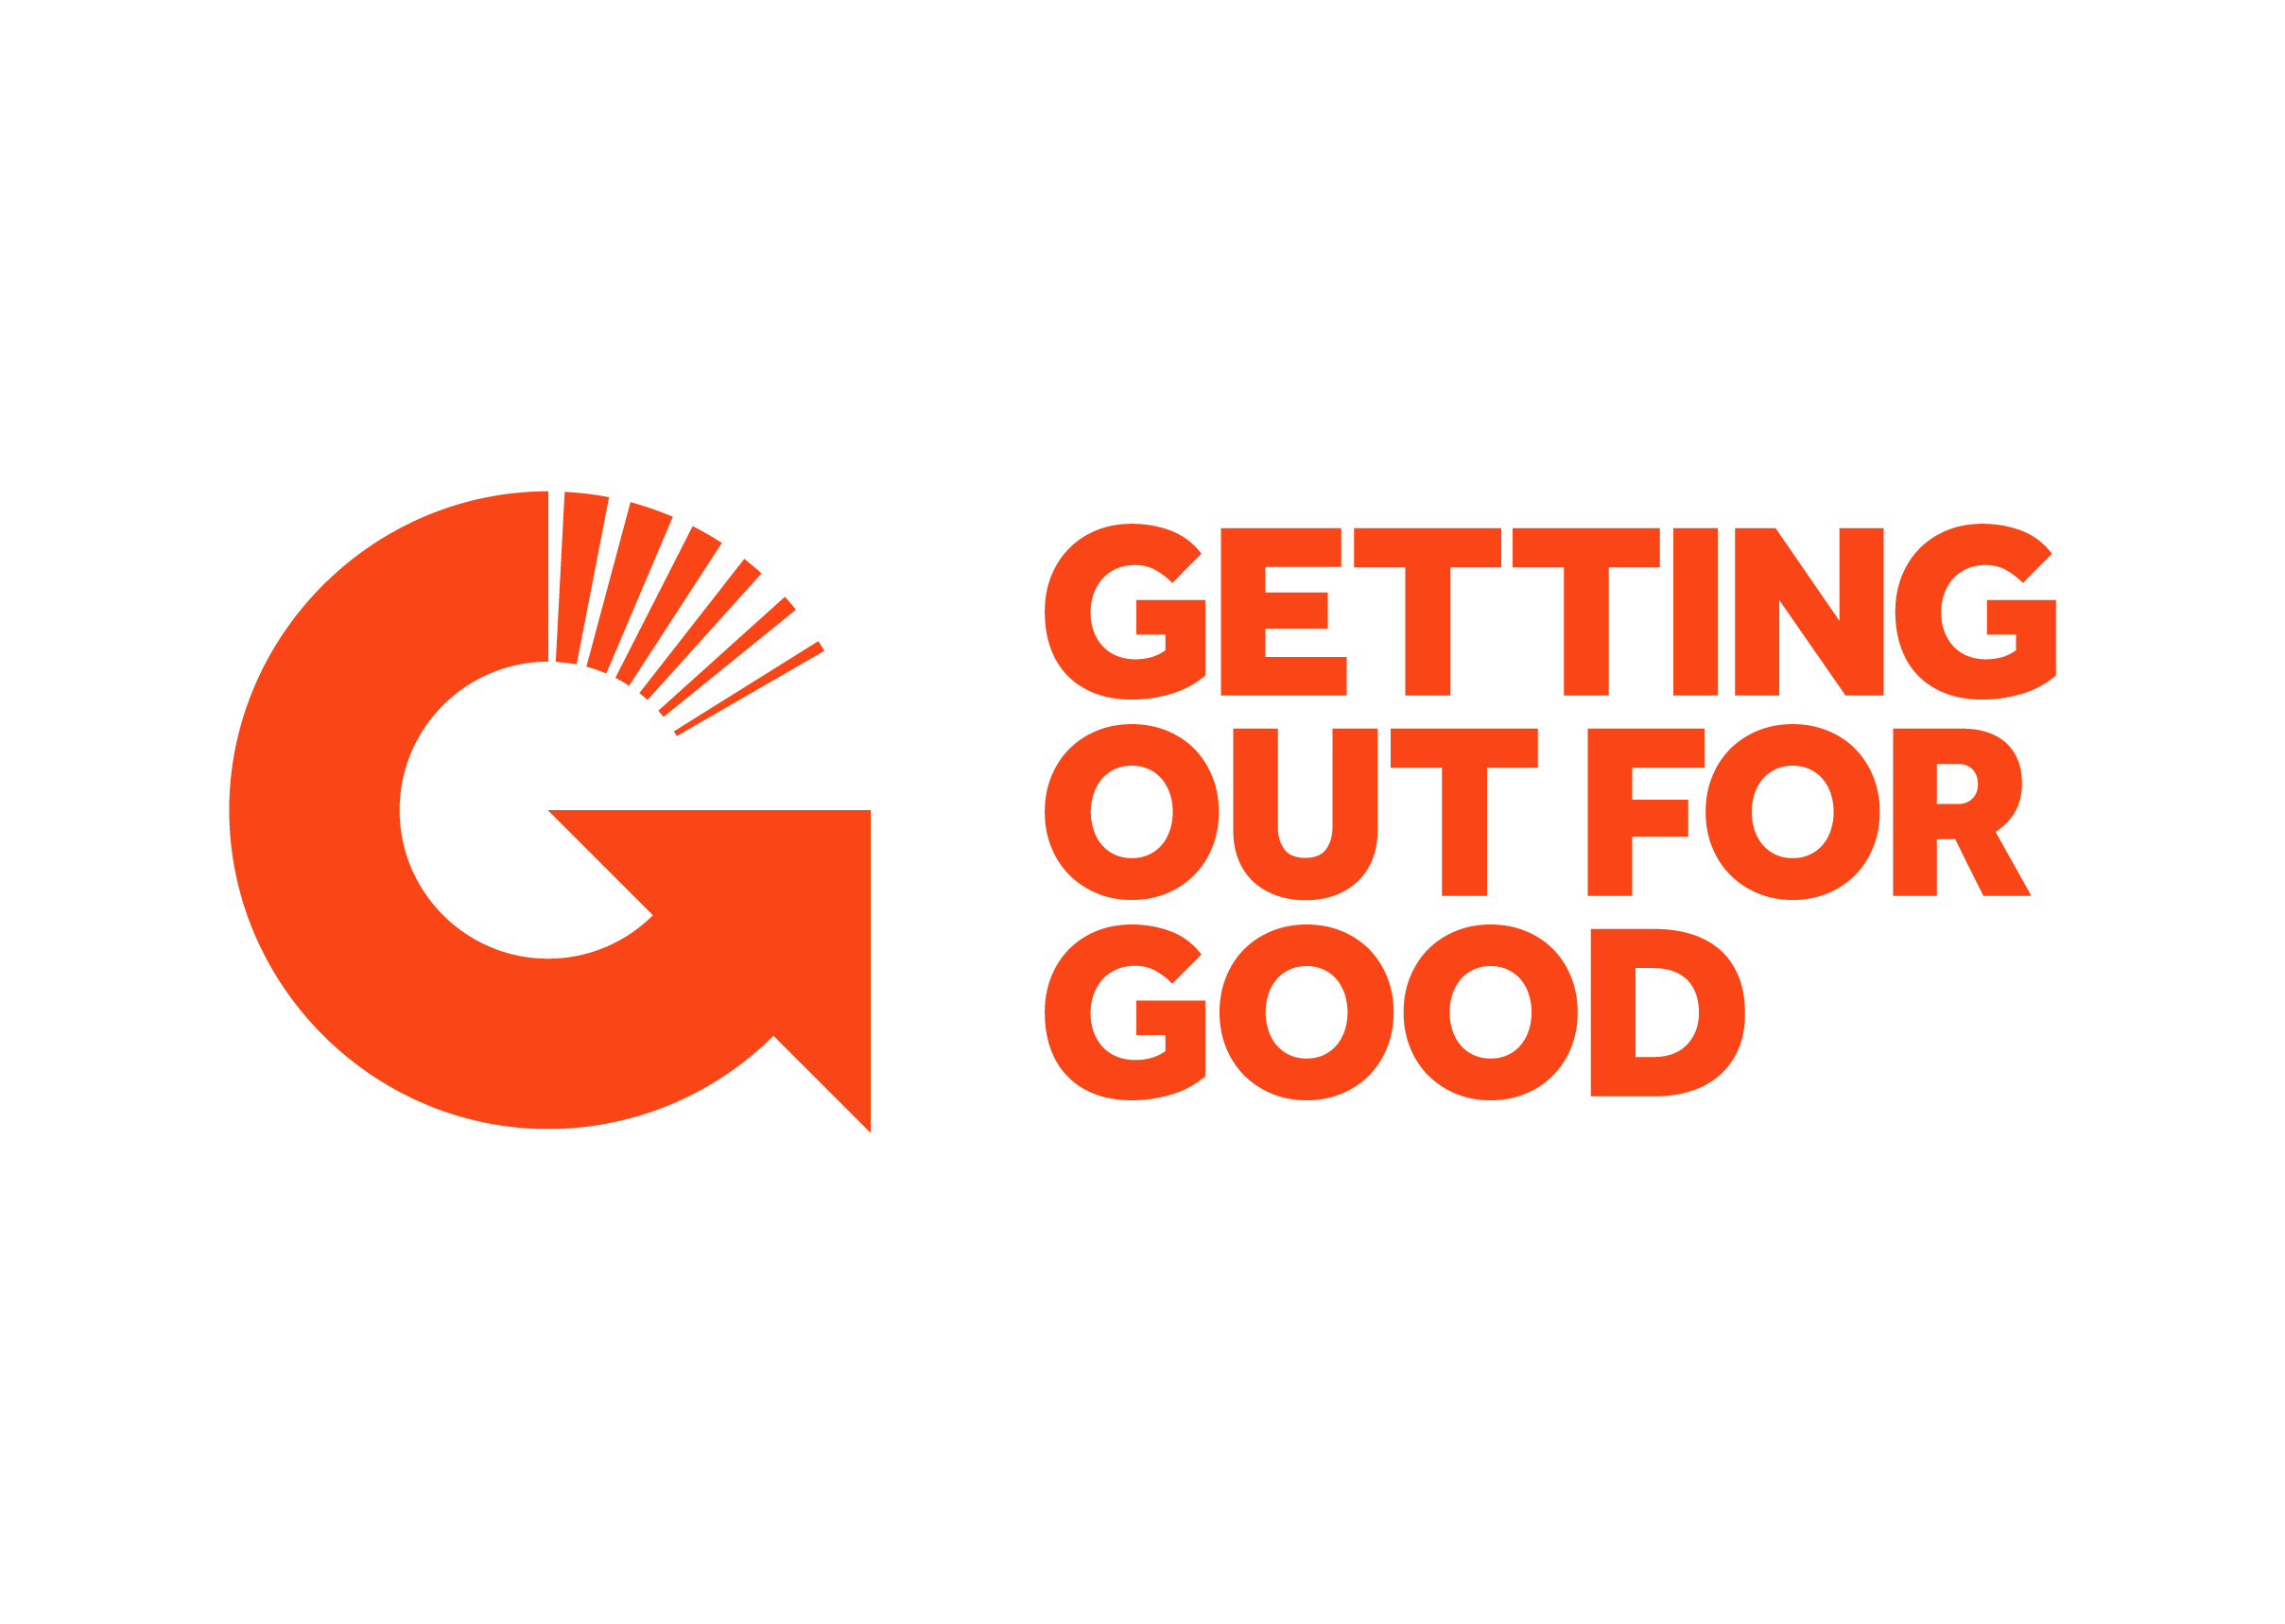 Getting Out for Good